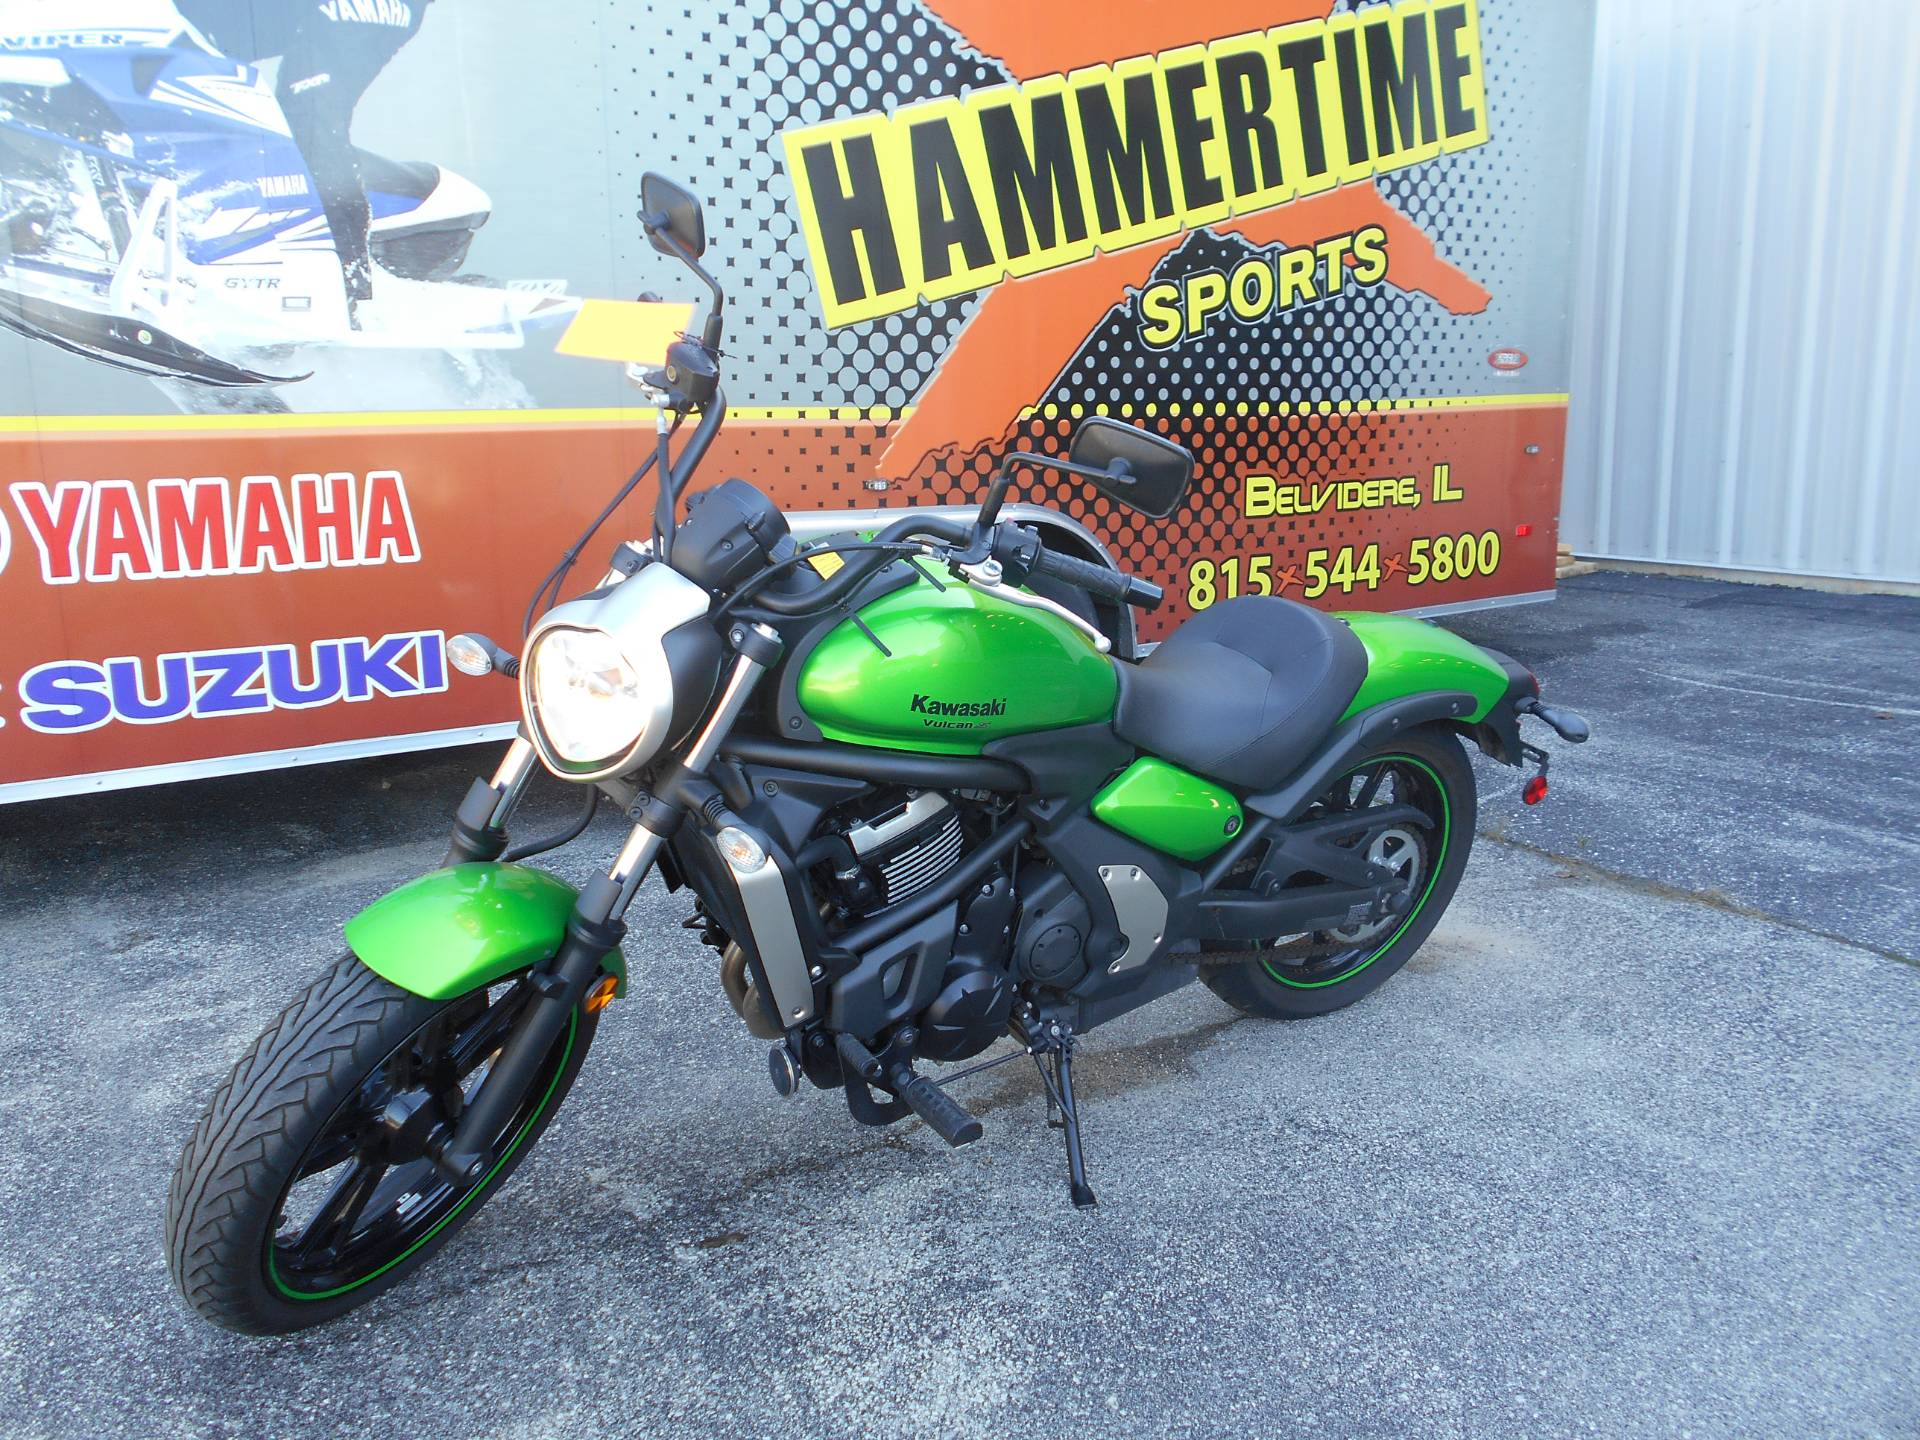 2015 Kawasaki Vulcan® S ABS in Belvidere, Illinois